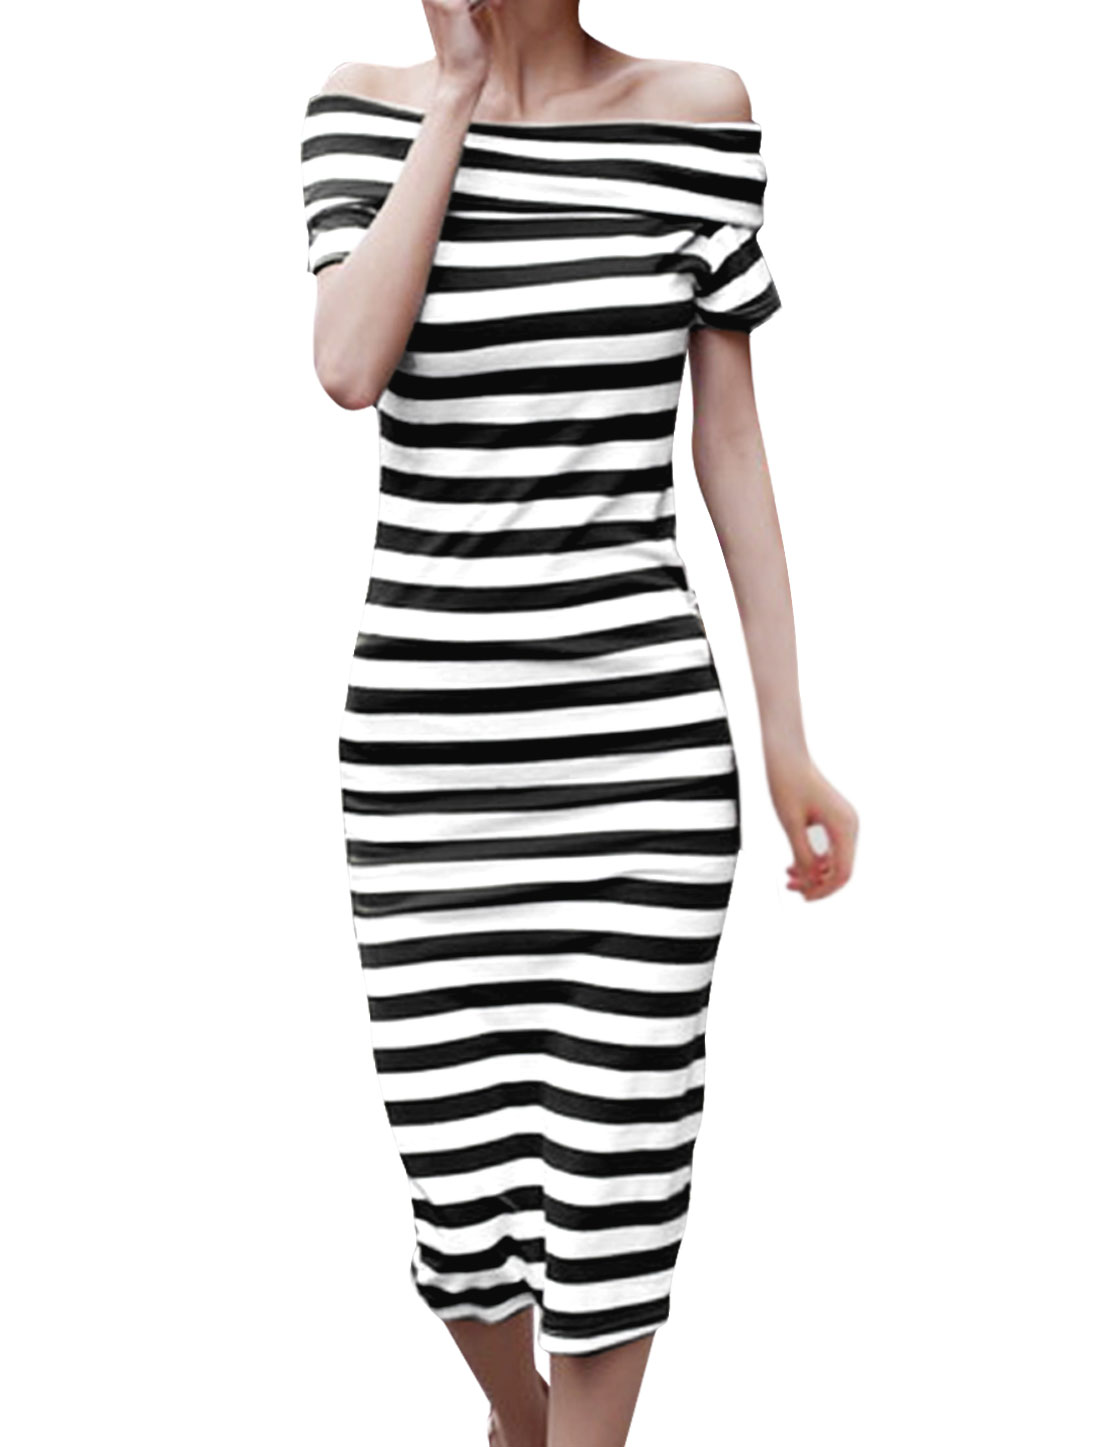 Lady Leisure Stripes Pattern Pullover Off-shoulder Black White Dress XS